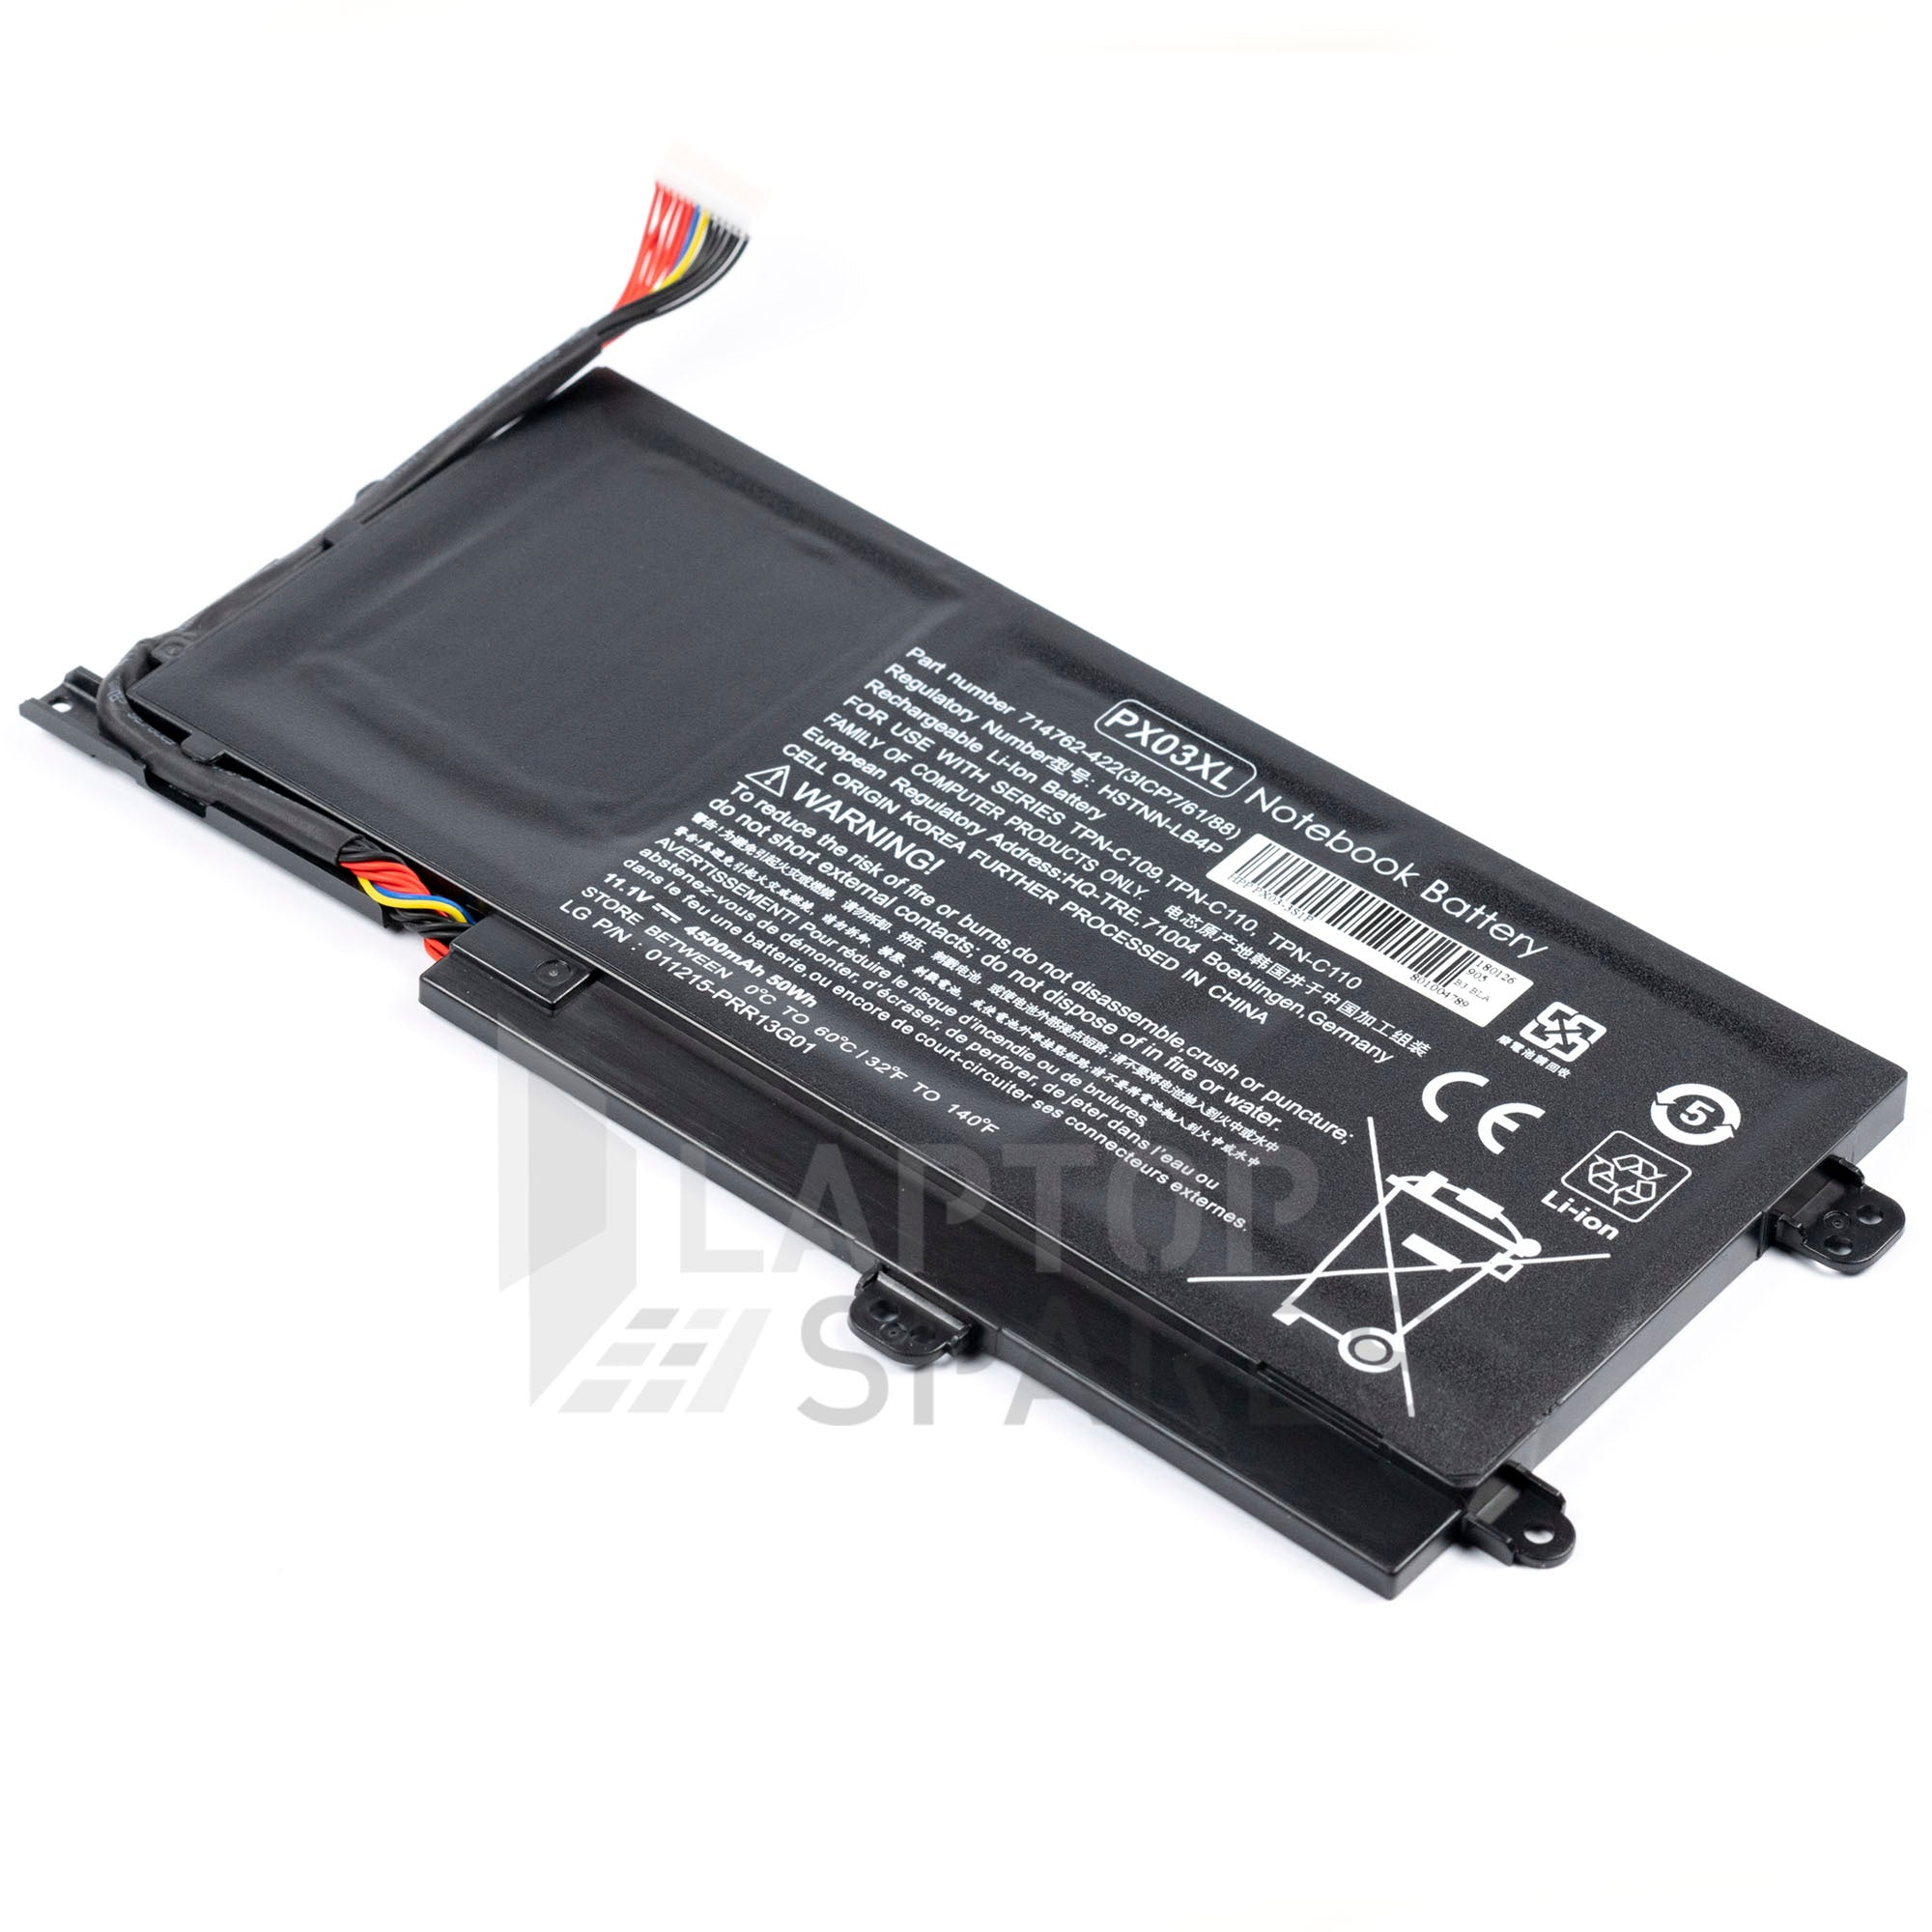 HP Envy Touchsmart ultrabook 715050-001 4500mAh Battery